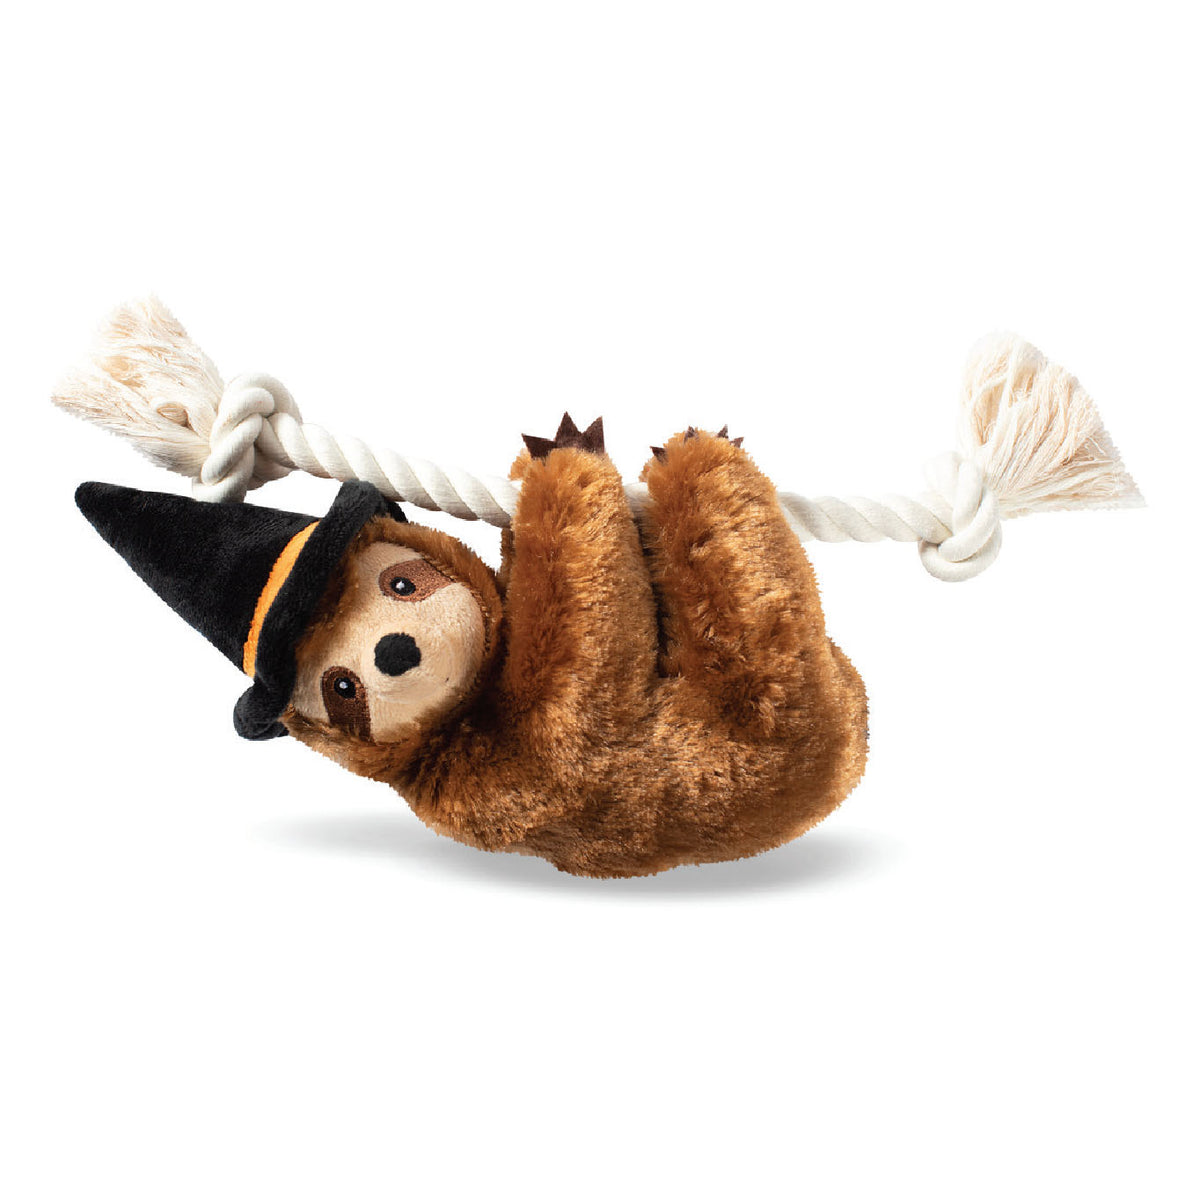 Witchy Sloth On A Rope Dog Toy Teacups Puppies Amp Boutique